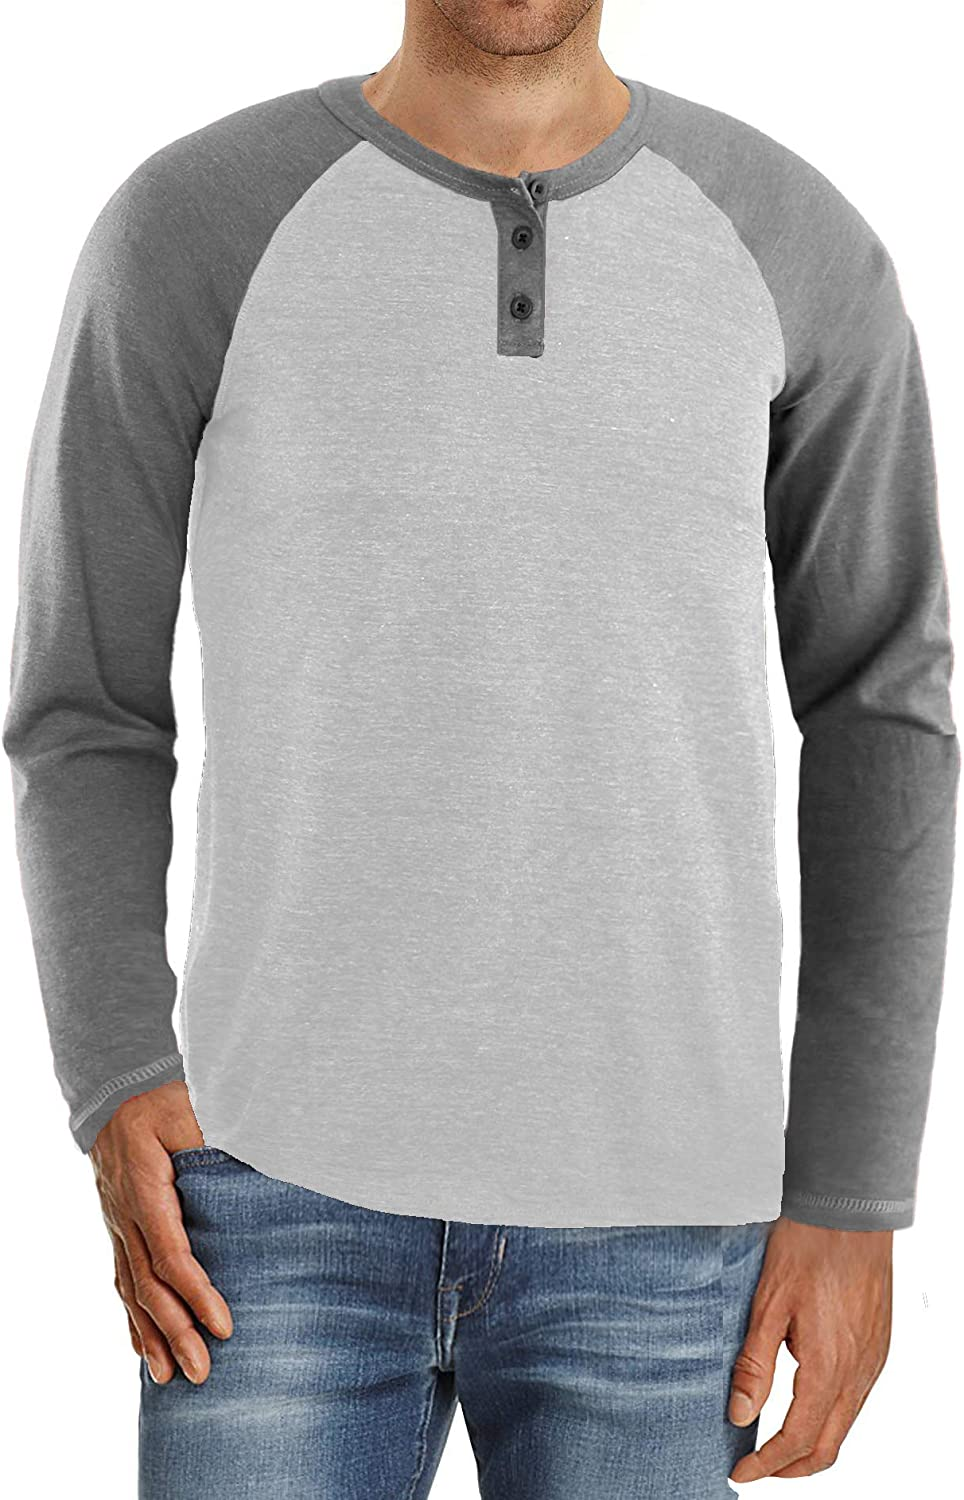 Yingqible Men's Max 49% OFF Long Sleeve Henley Casual Neck Basic Shirts Crew Ranking TOP20